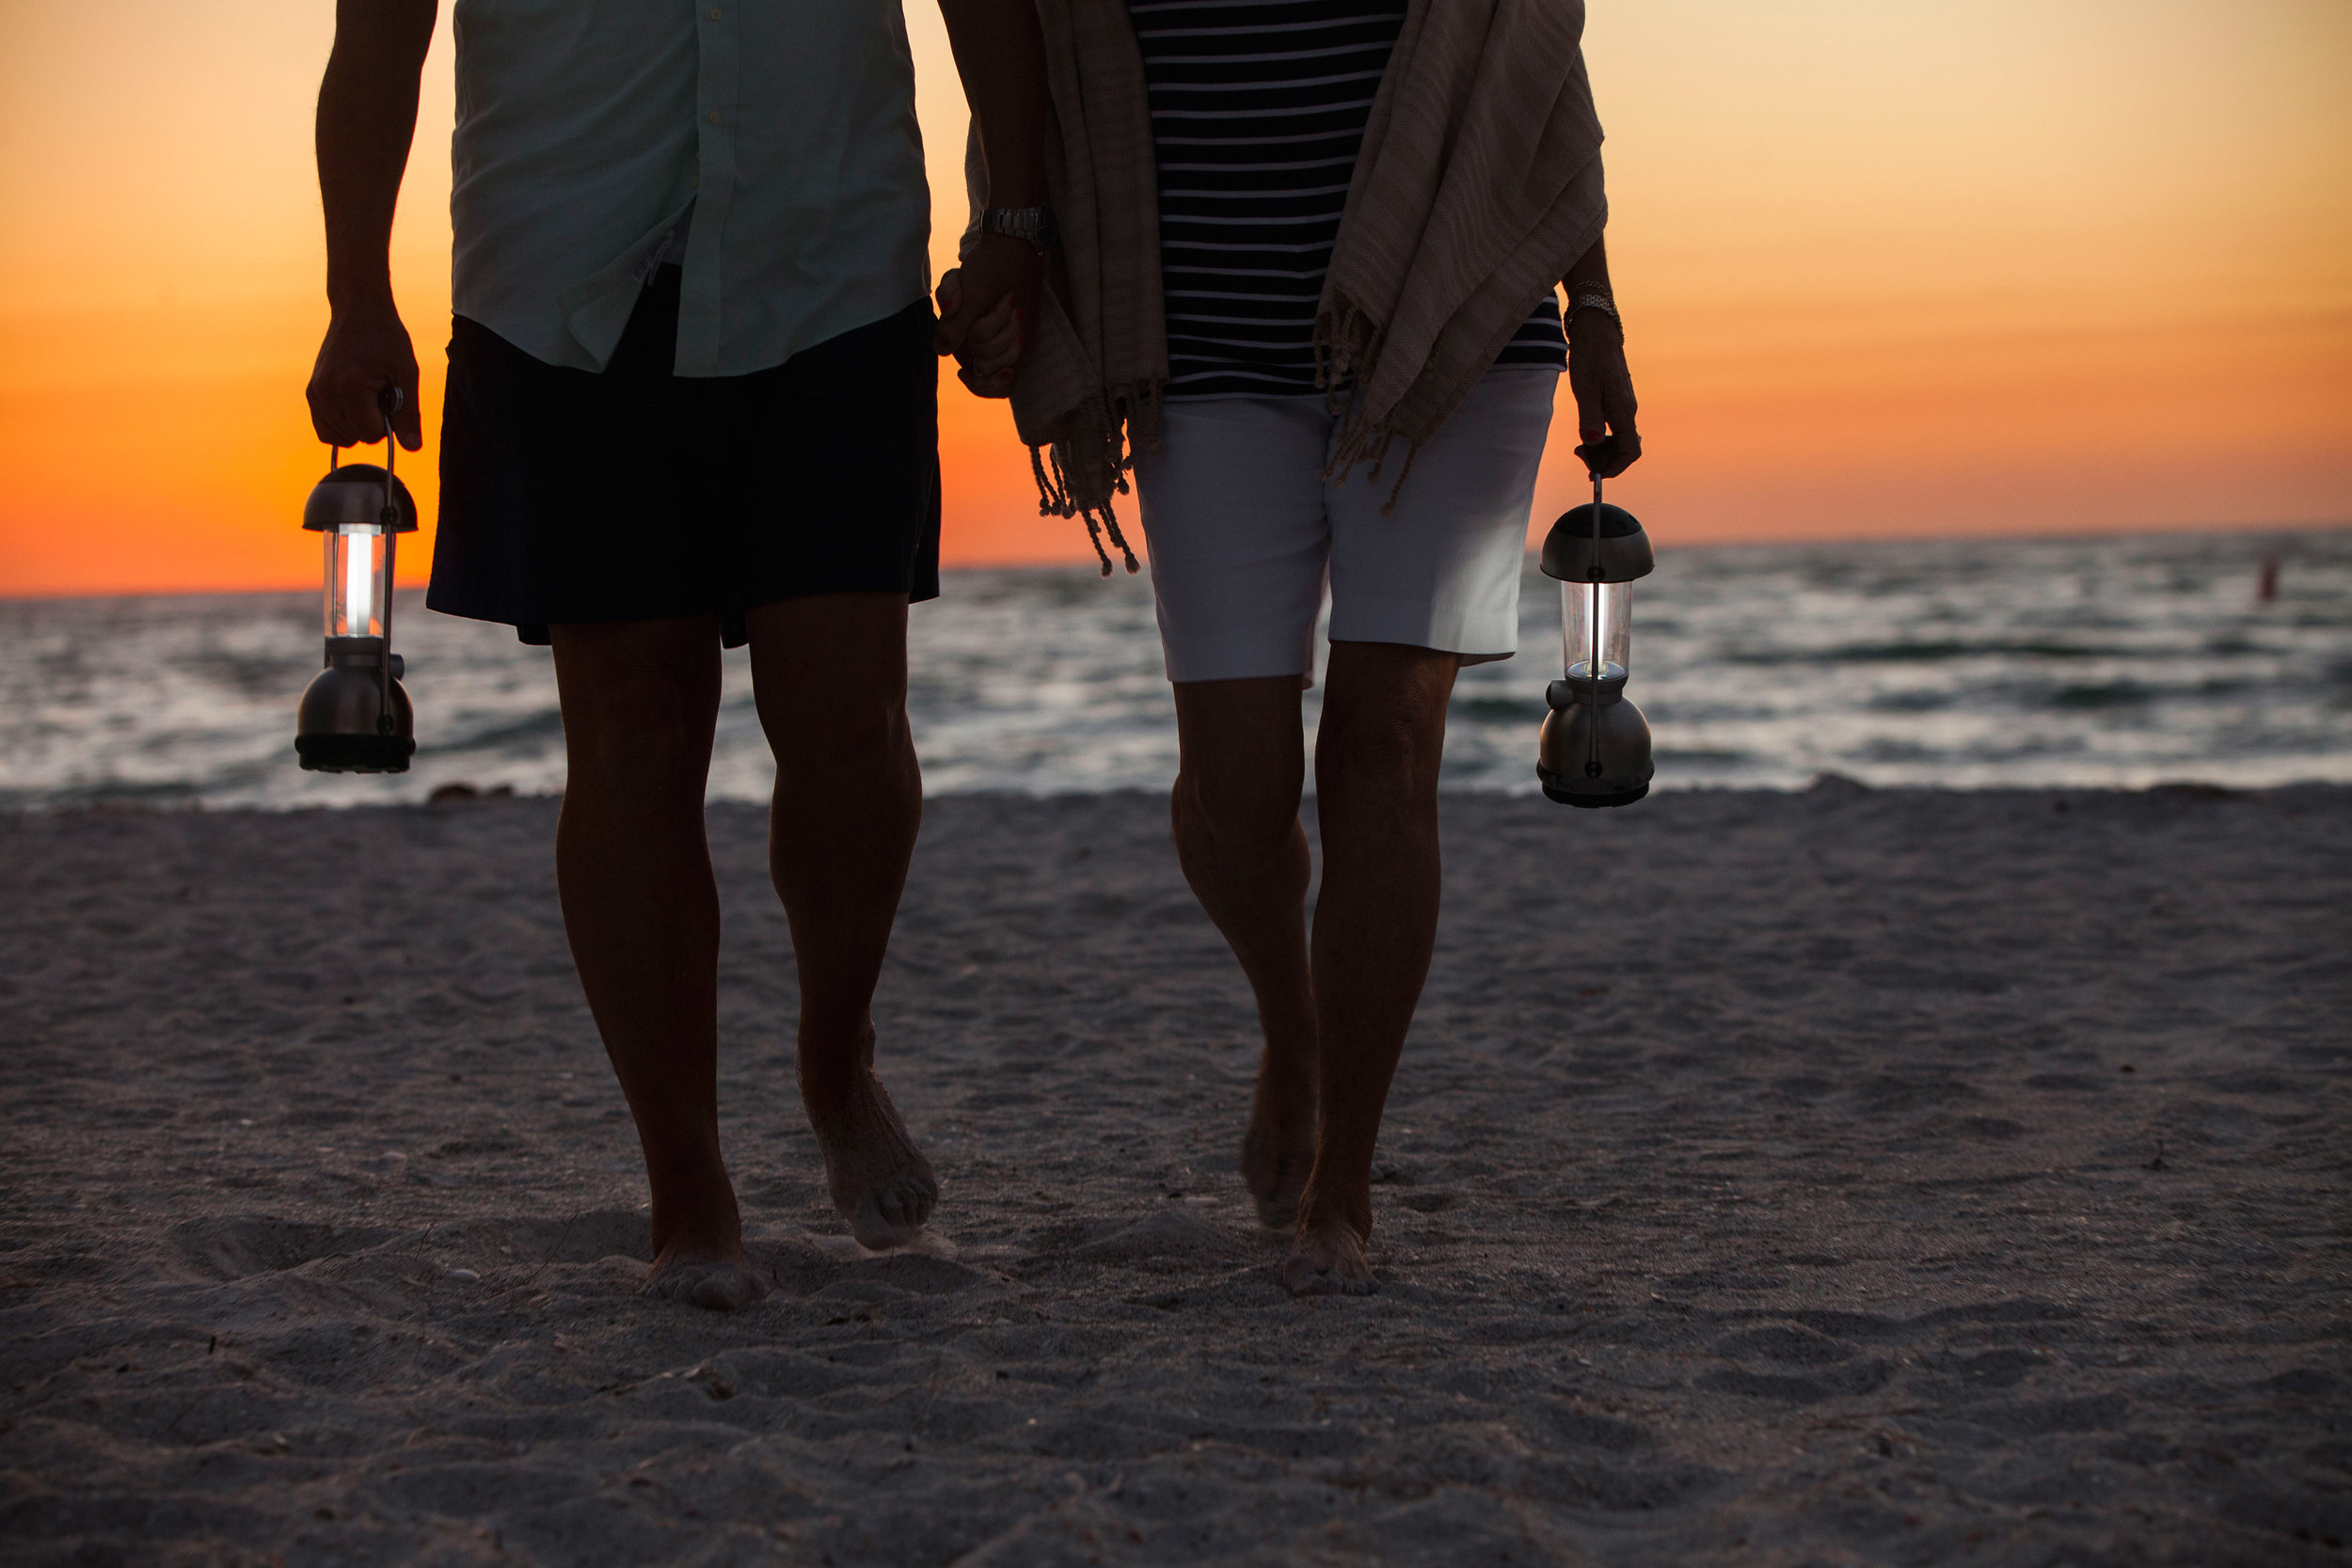 Day1_older_couple_at_sunset-7825_hr.jpg